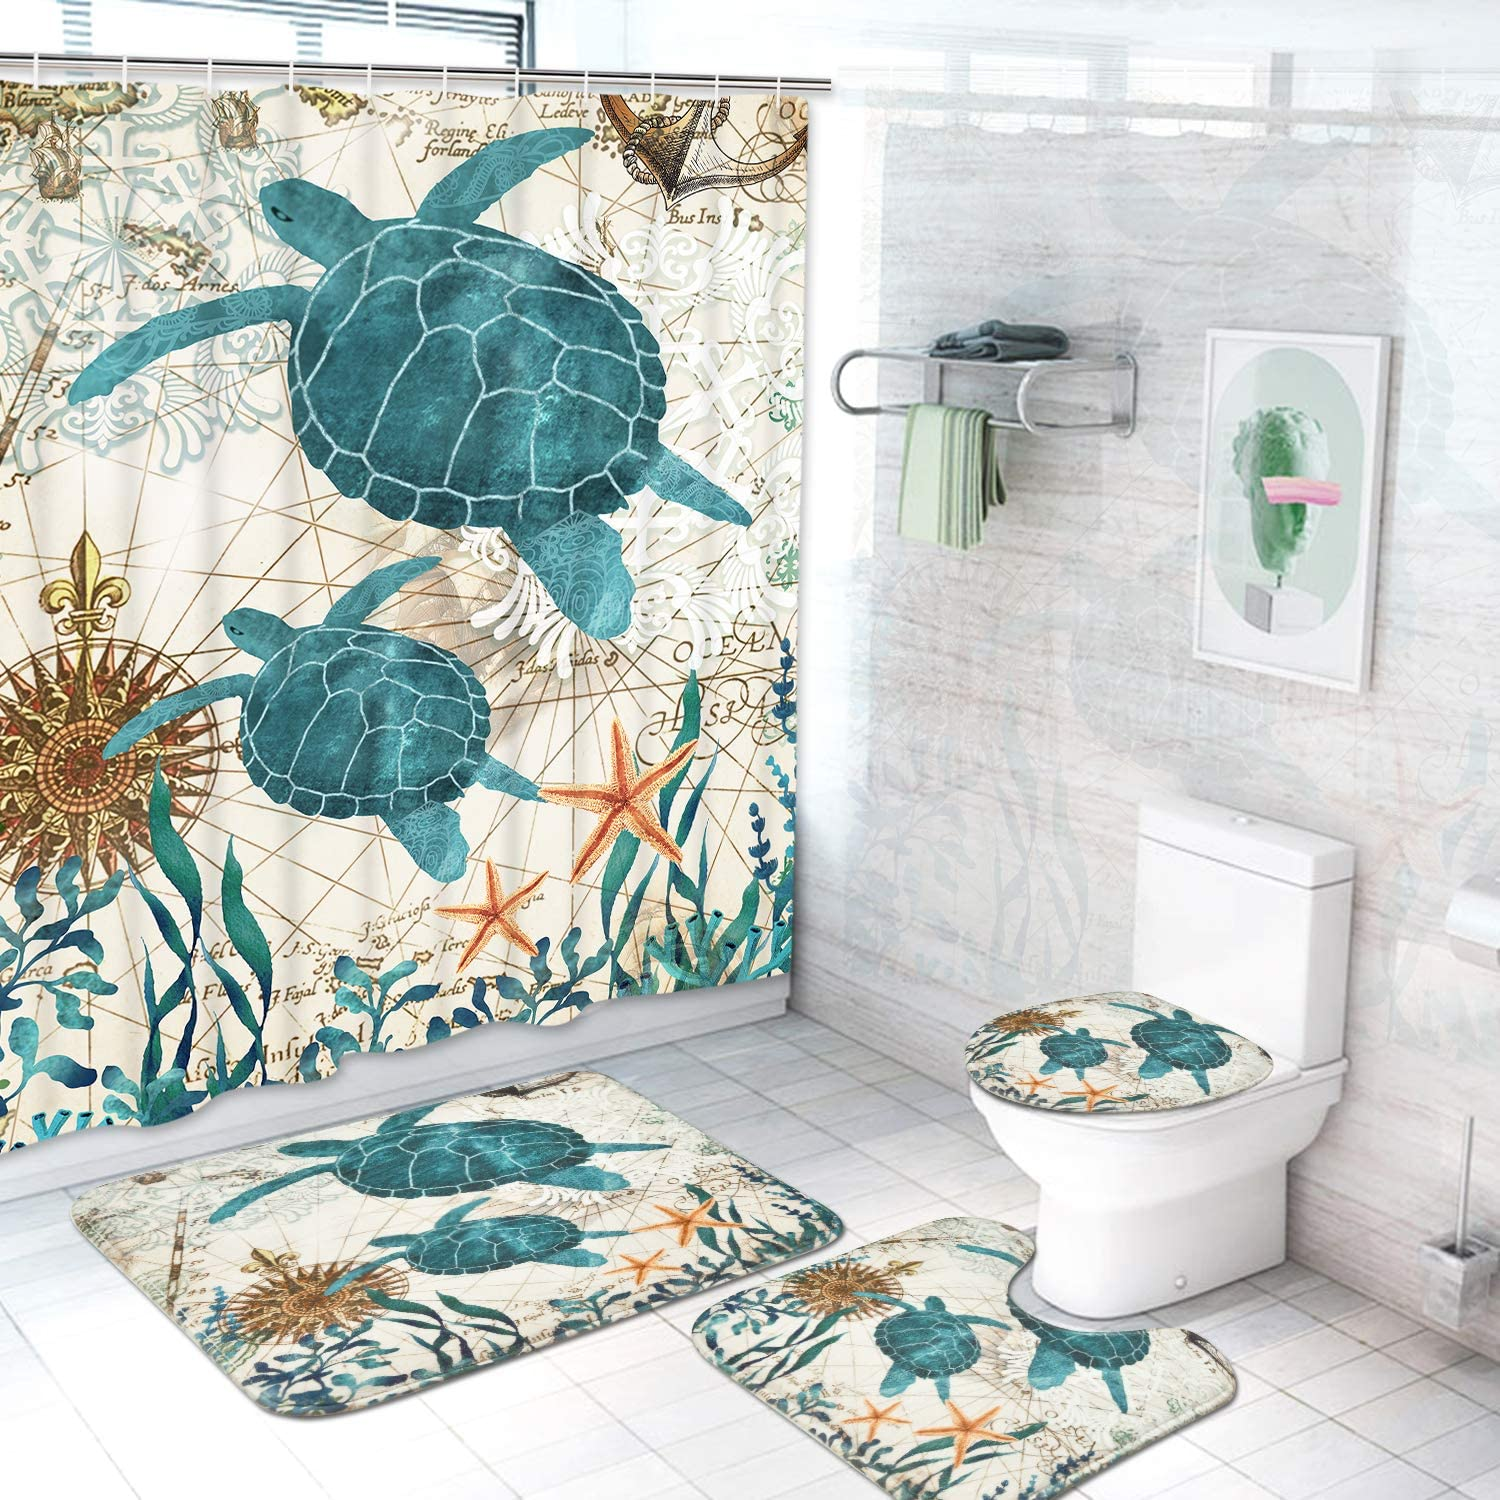 Ikfashoni Sea Turtle Shower Curtain with Non-Slip Rugs Toilet Lid Cover and Bath Mat Ocean Creature Landscape Bathroom Curtain with 12 Hooks Durable Watereproof Fabric Shower Curtain Sets